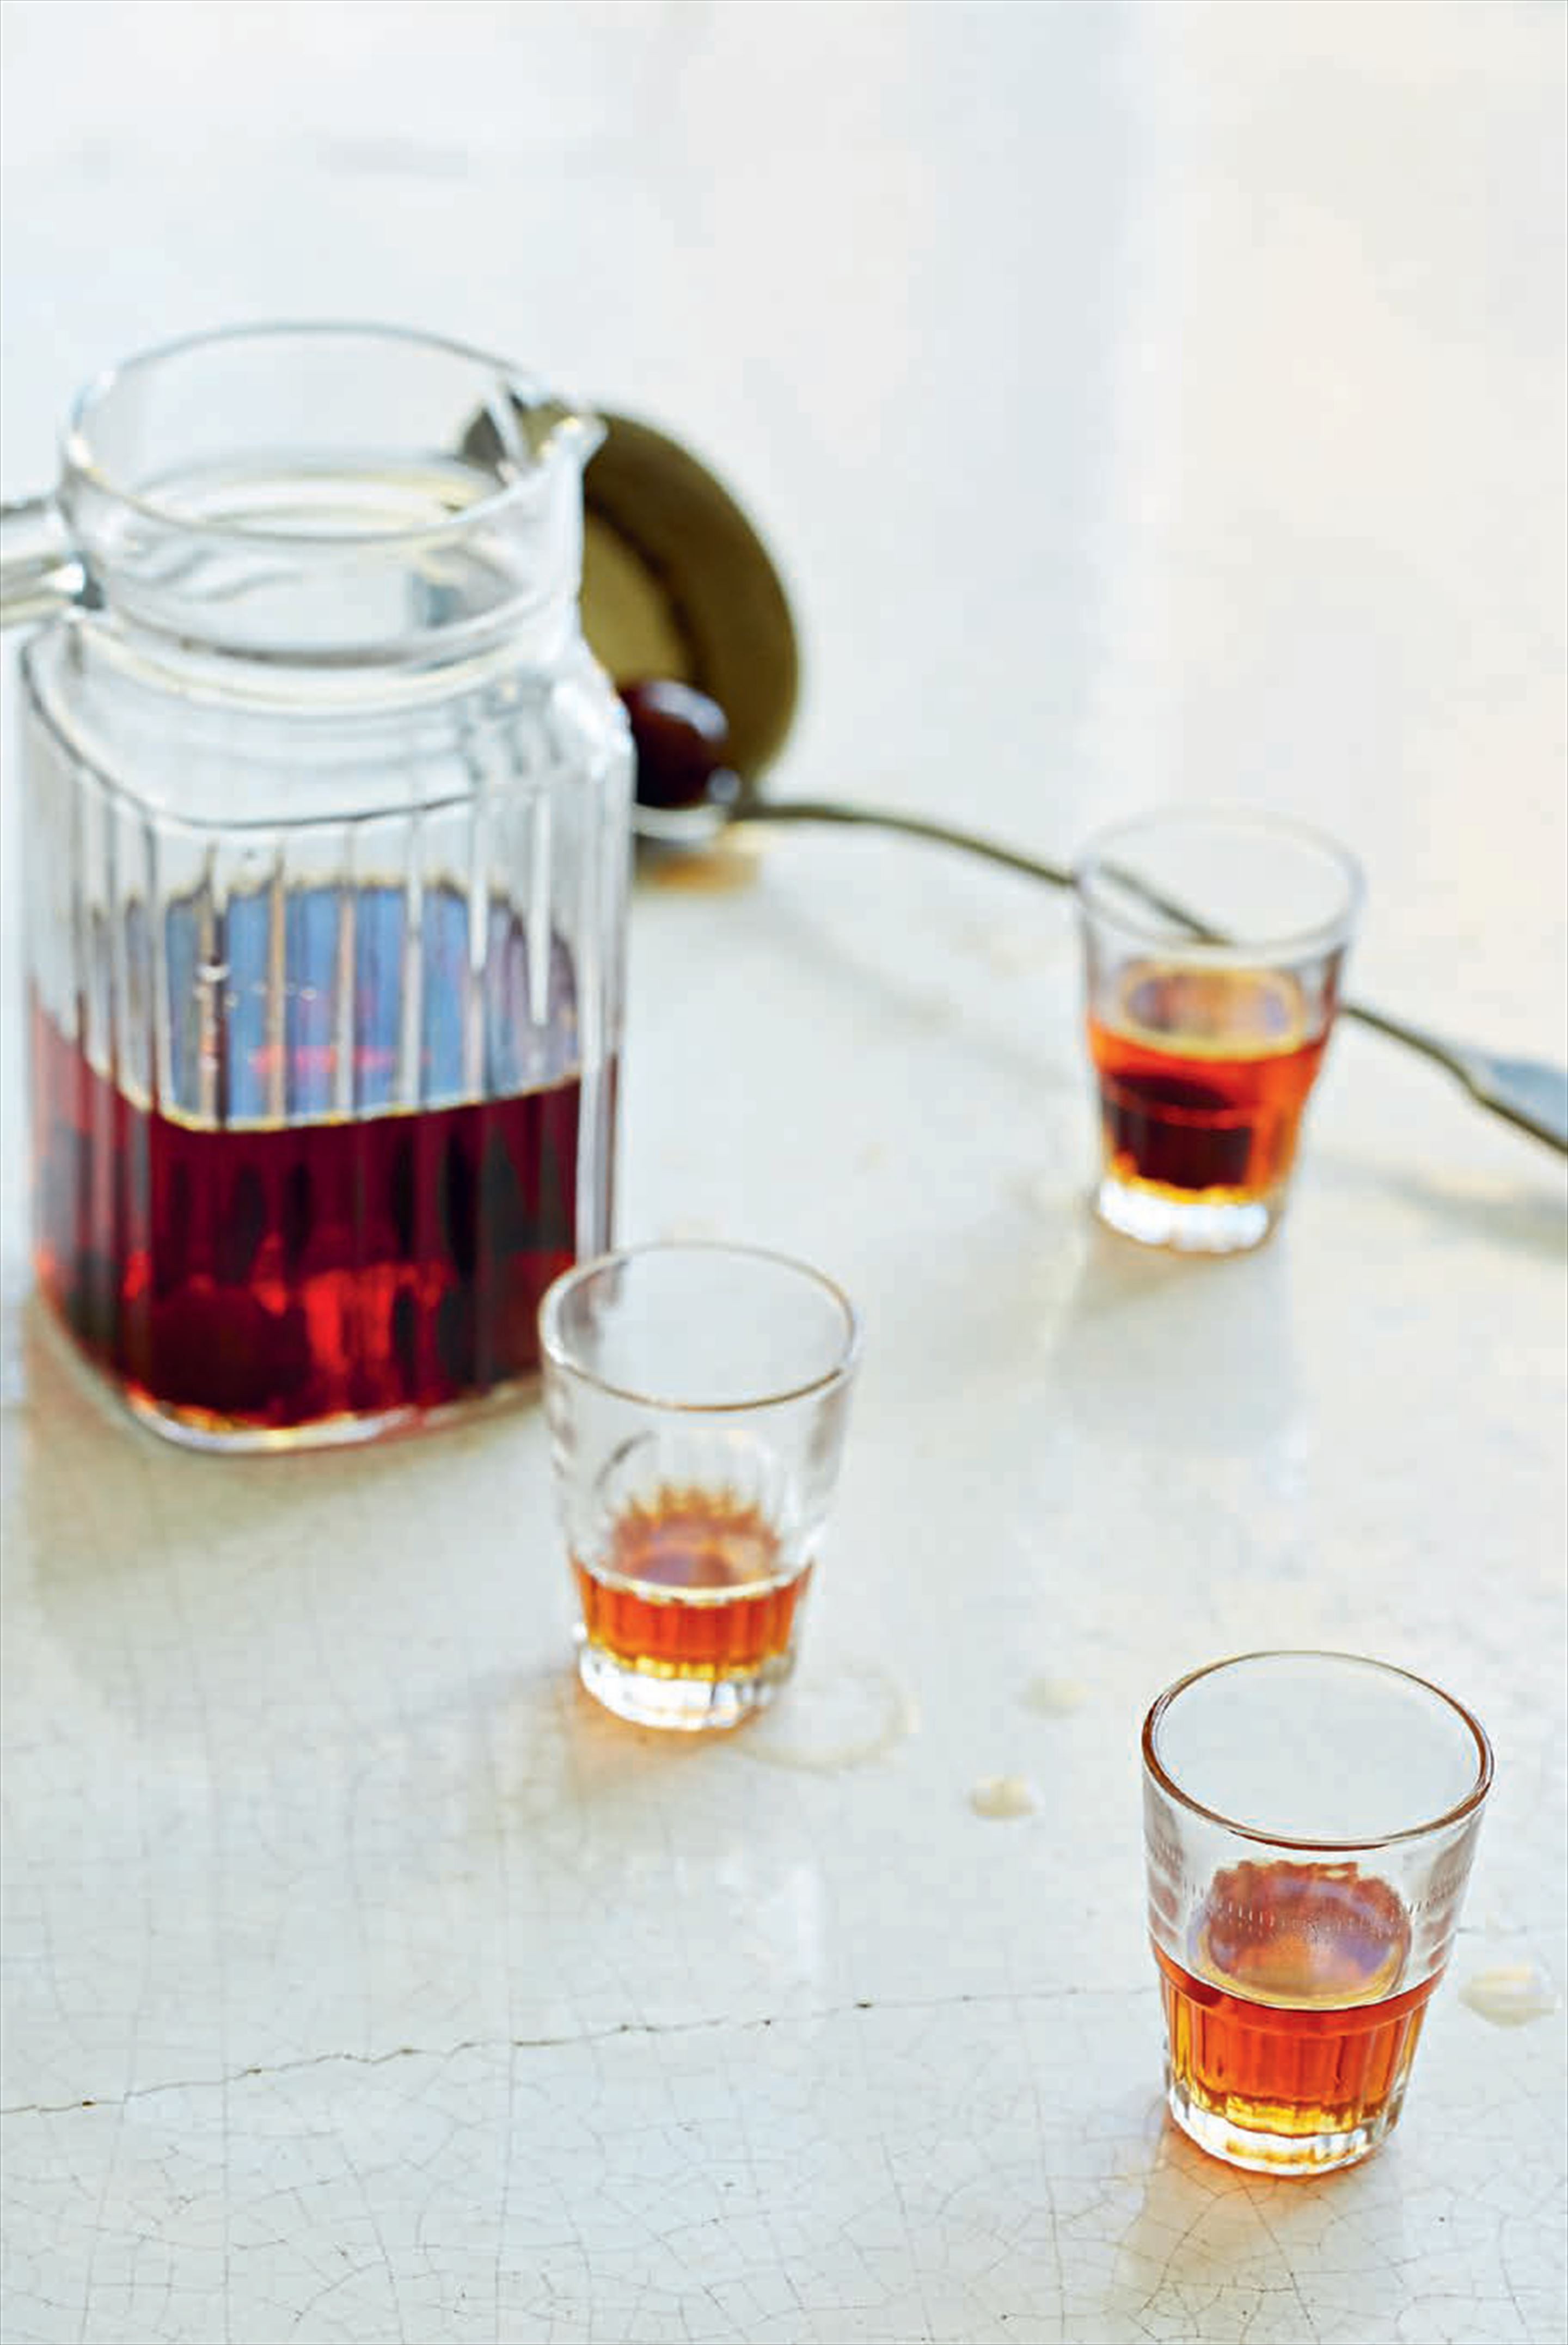 Sour cherry liqueur